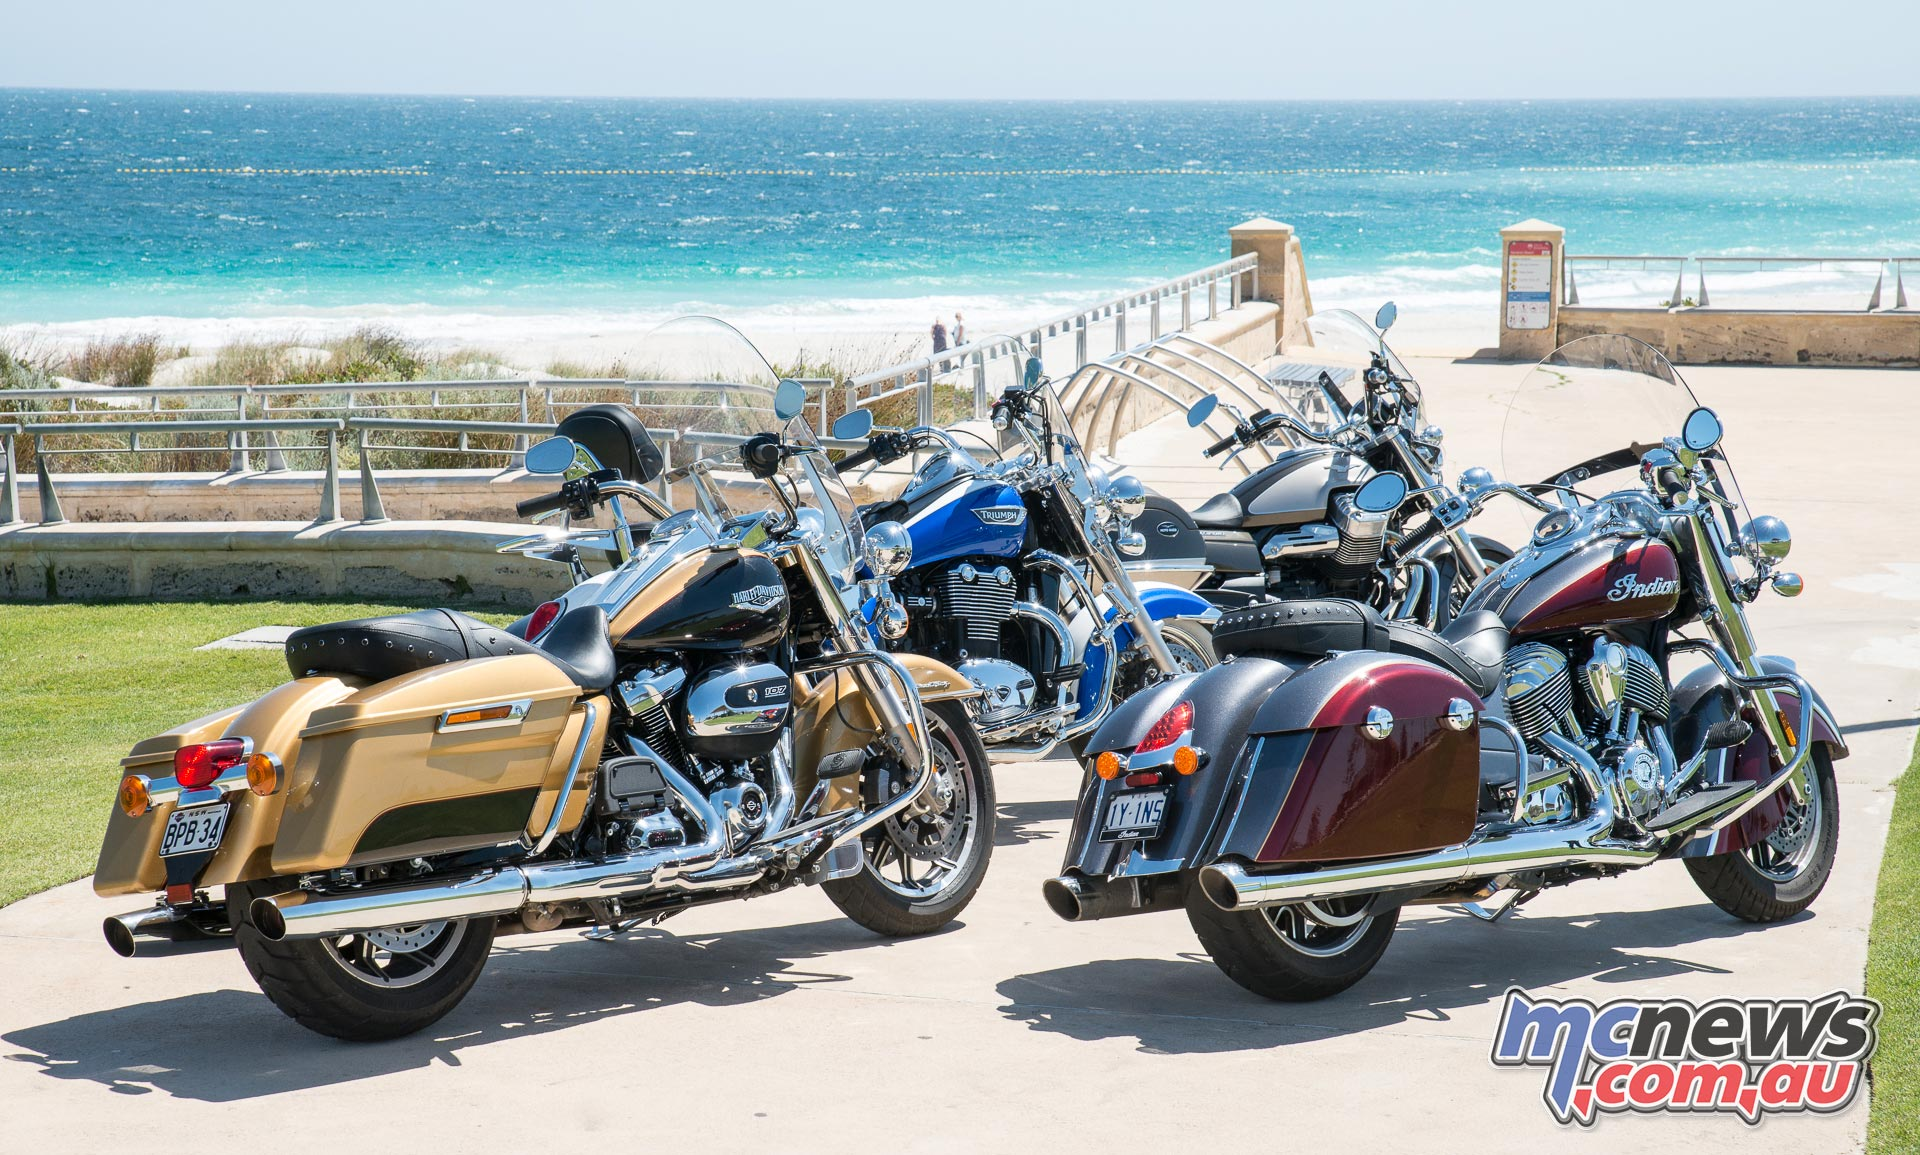 Harley Road King, Indian Springfield, Triumph Thunderbird LT and Moto Guzzi California Touring overlooking Sorrento Beach across to the Indian Ocean.